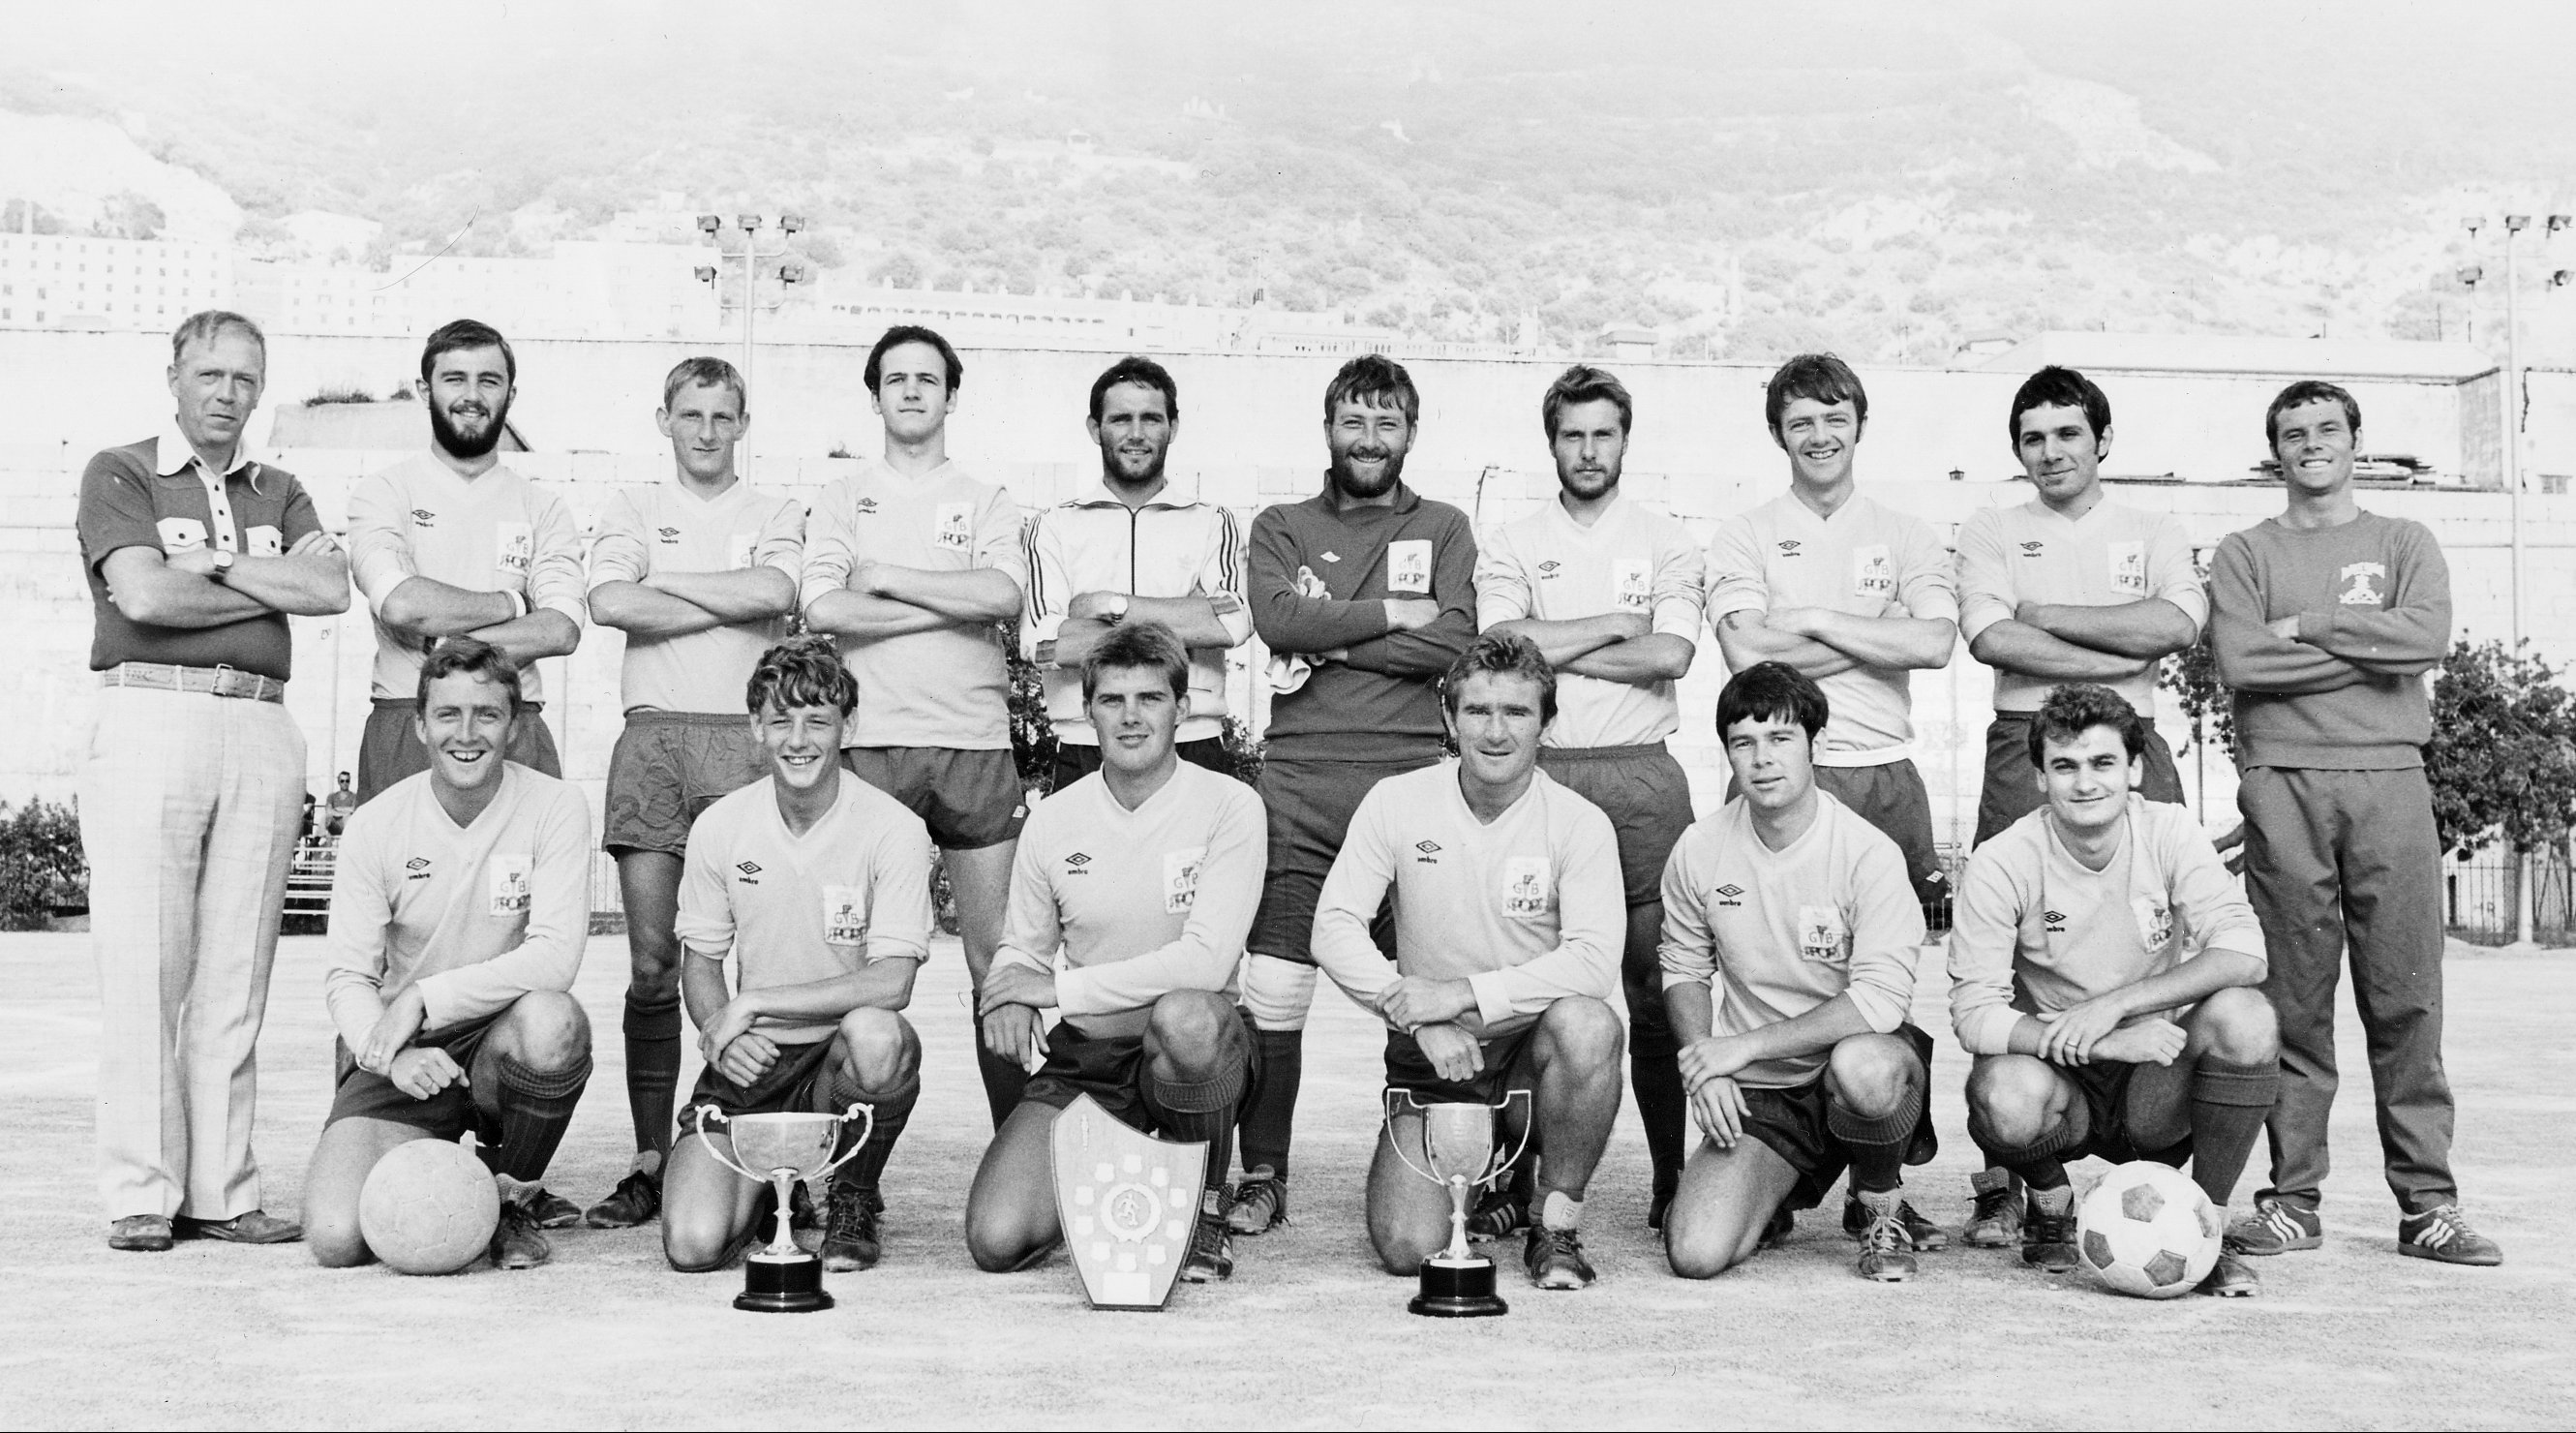 HMS Rooke very successful Football team 1980/81: http://www.greaves9268.karoo.net/page8.html